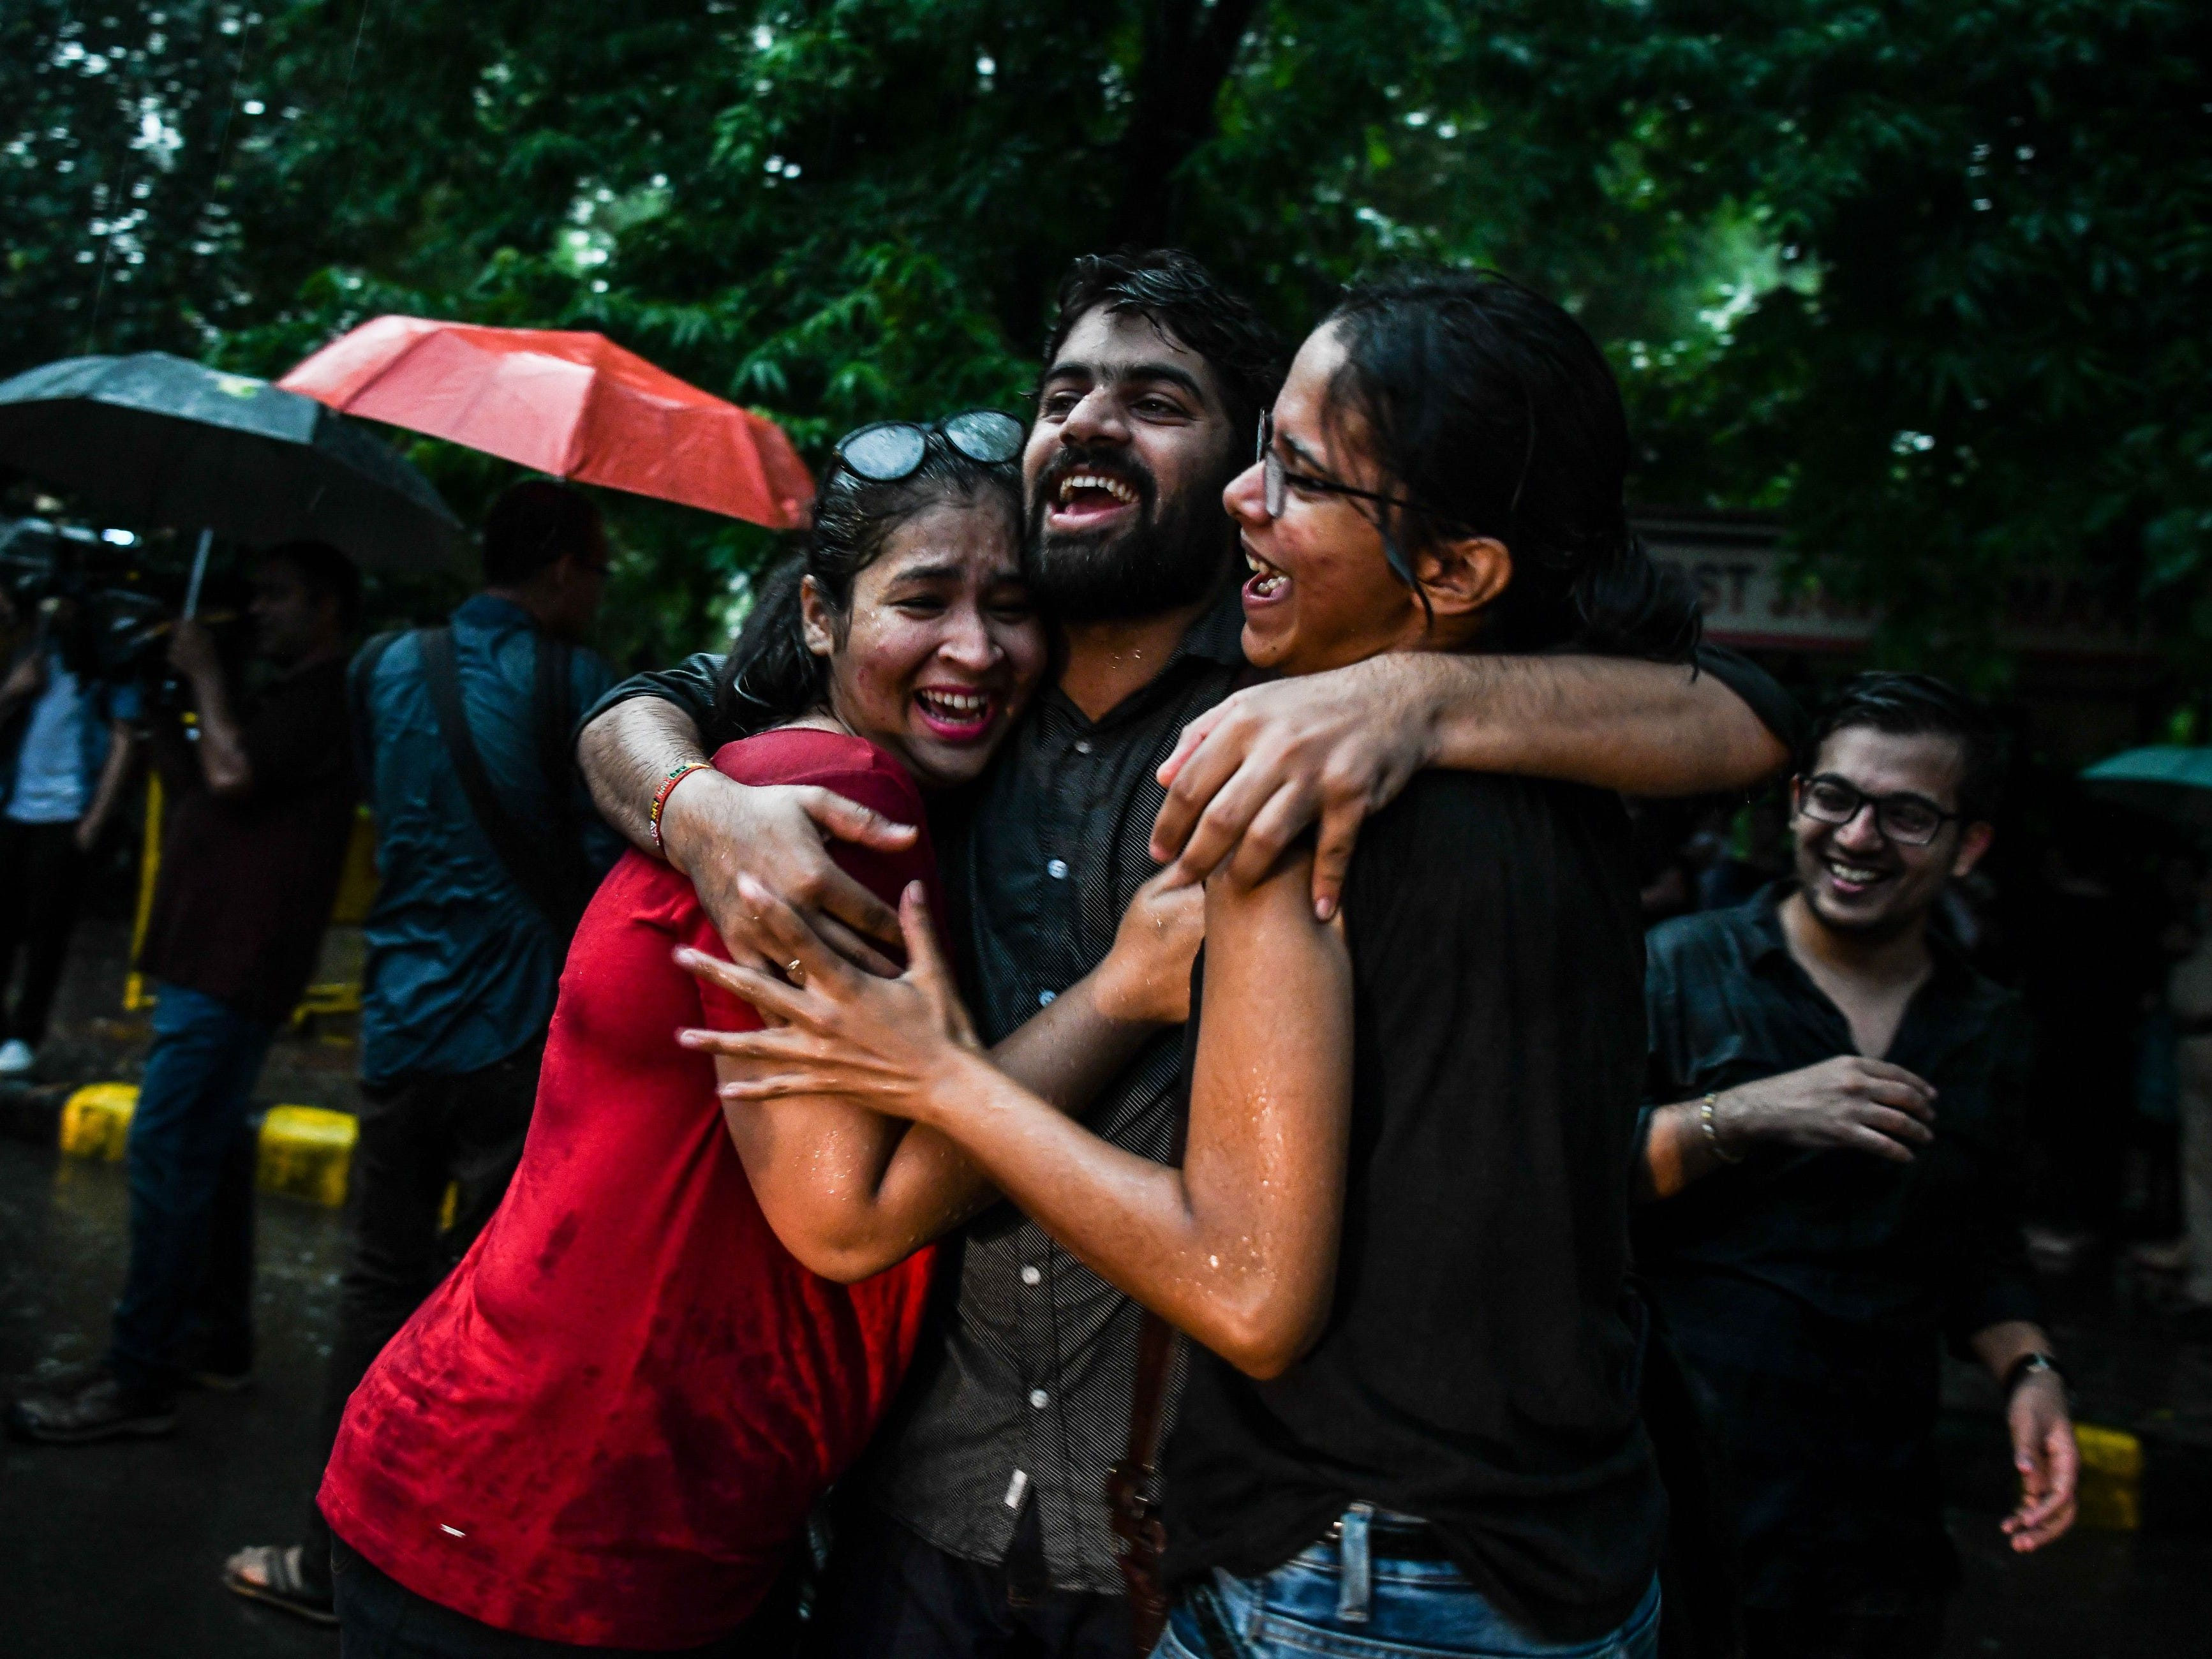 Gay rights supporters celebrate the Supreme Court decision to strike down a colonial-era ban on gay sex, during heavy rainfall in New Delhi, Sept. 6, 2018.